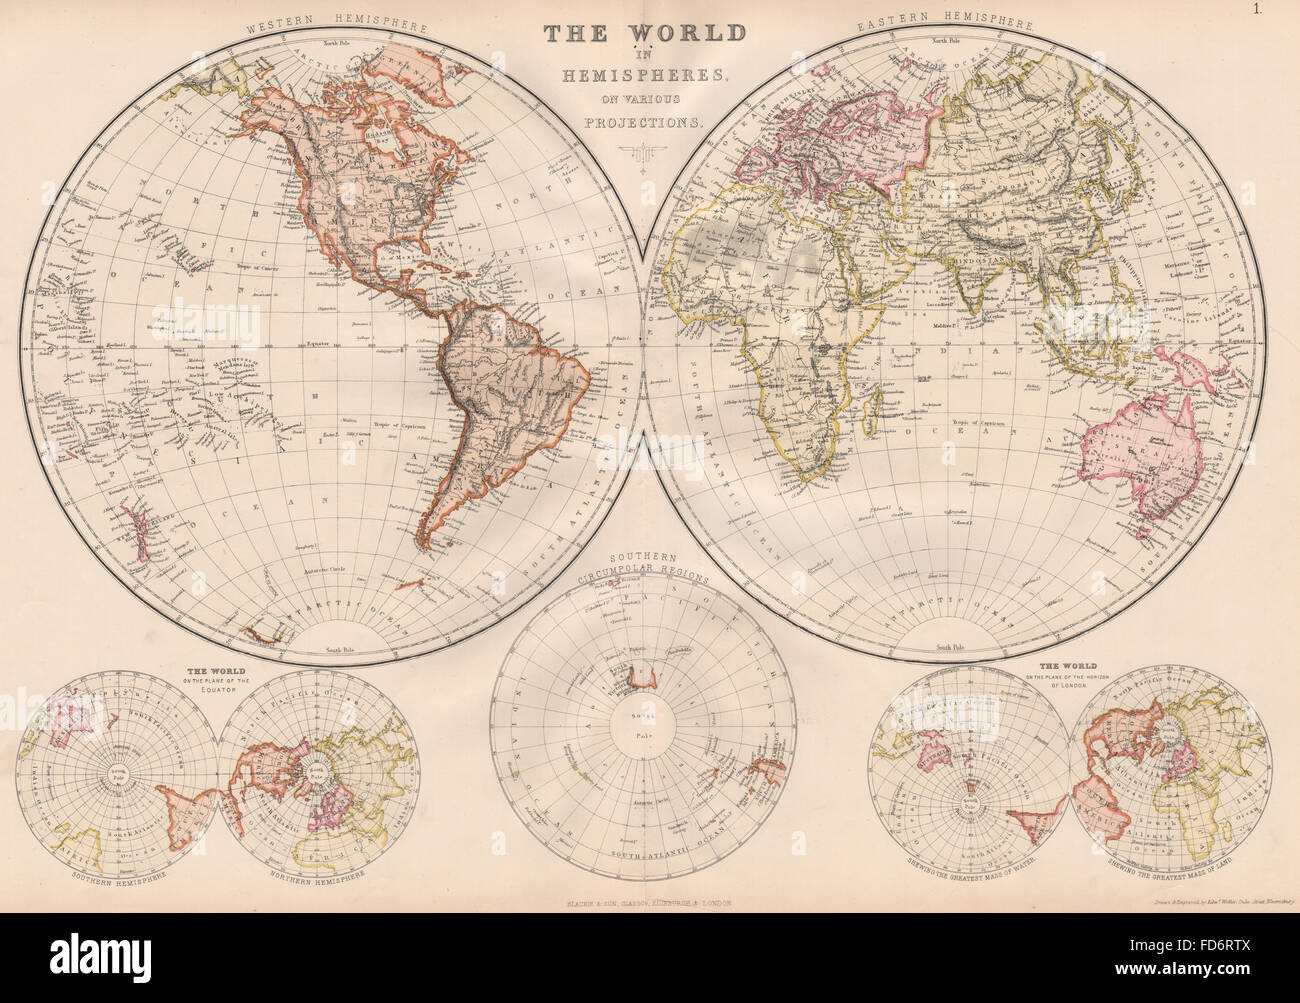 Hemispheres geography stock photos hemispheres geography stock world in hemispheres equatorial antarctic london planes blackie 1882 map stock image gumiabroncs Image collections